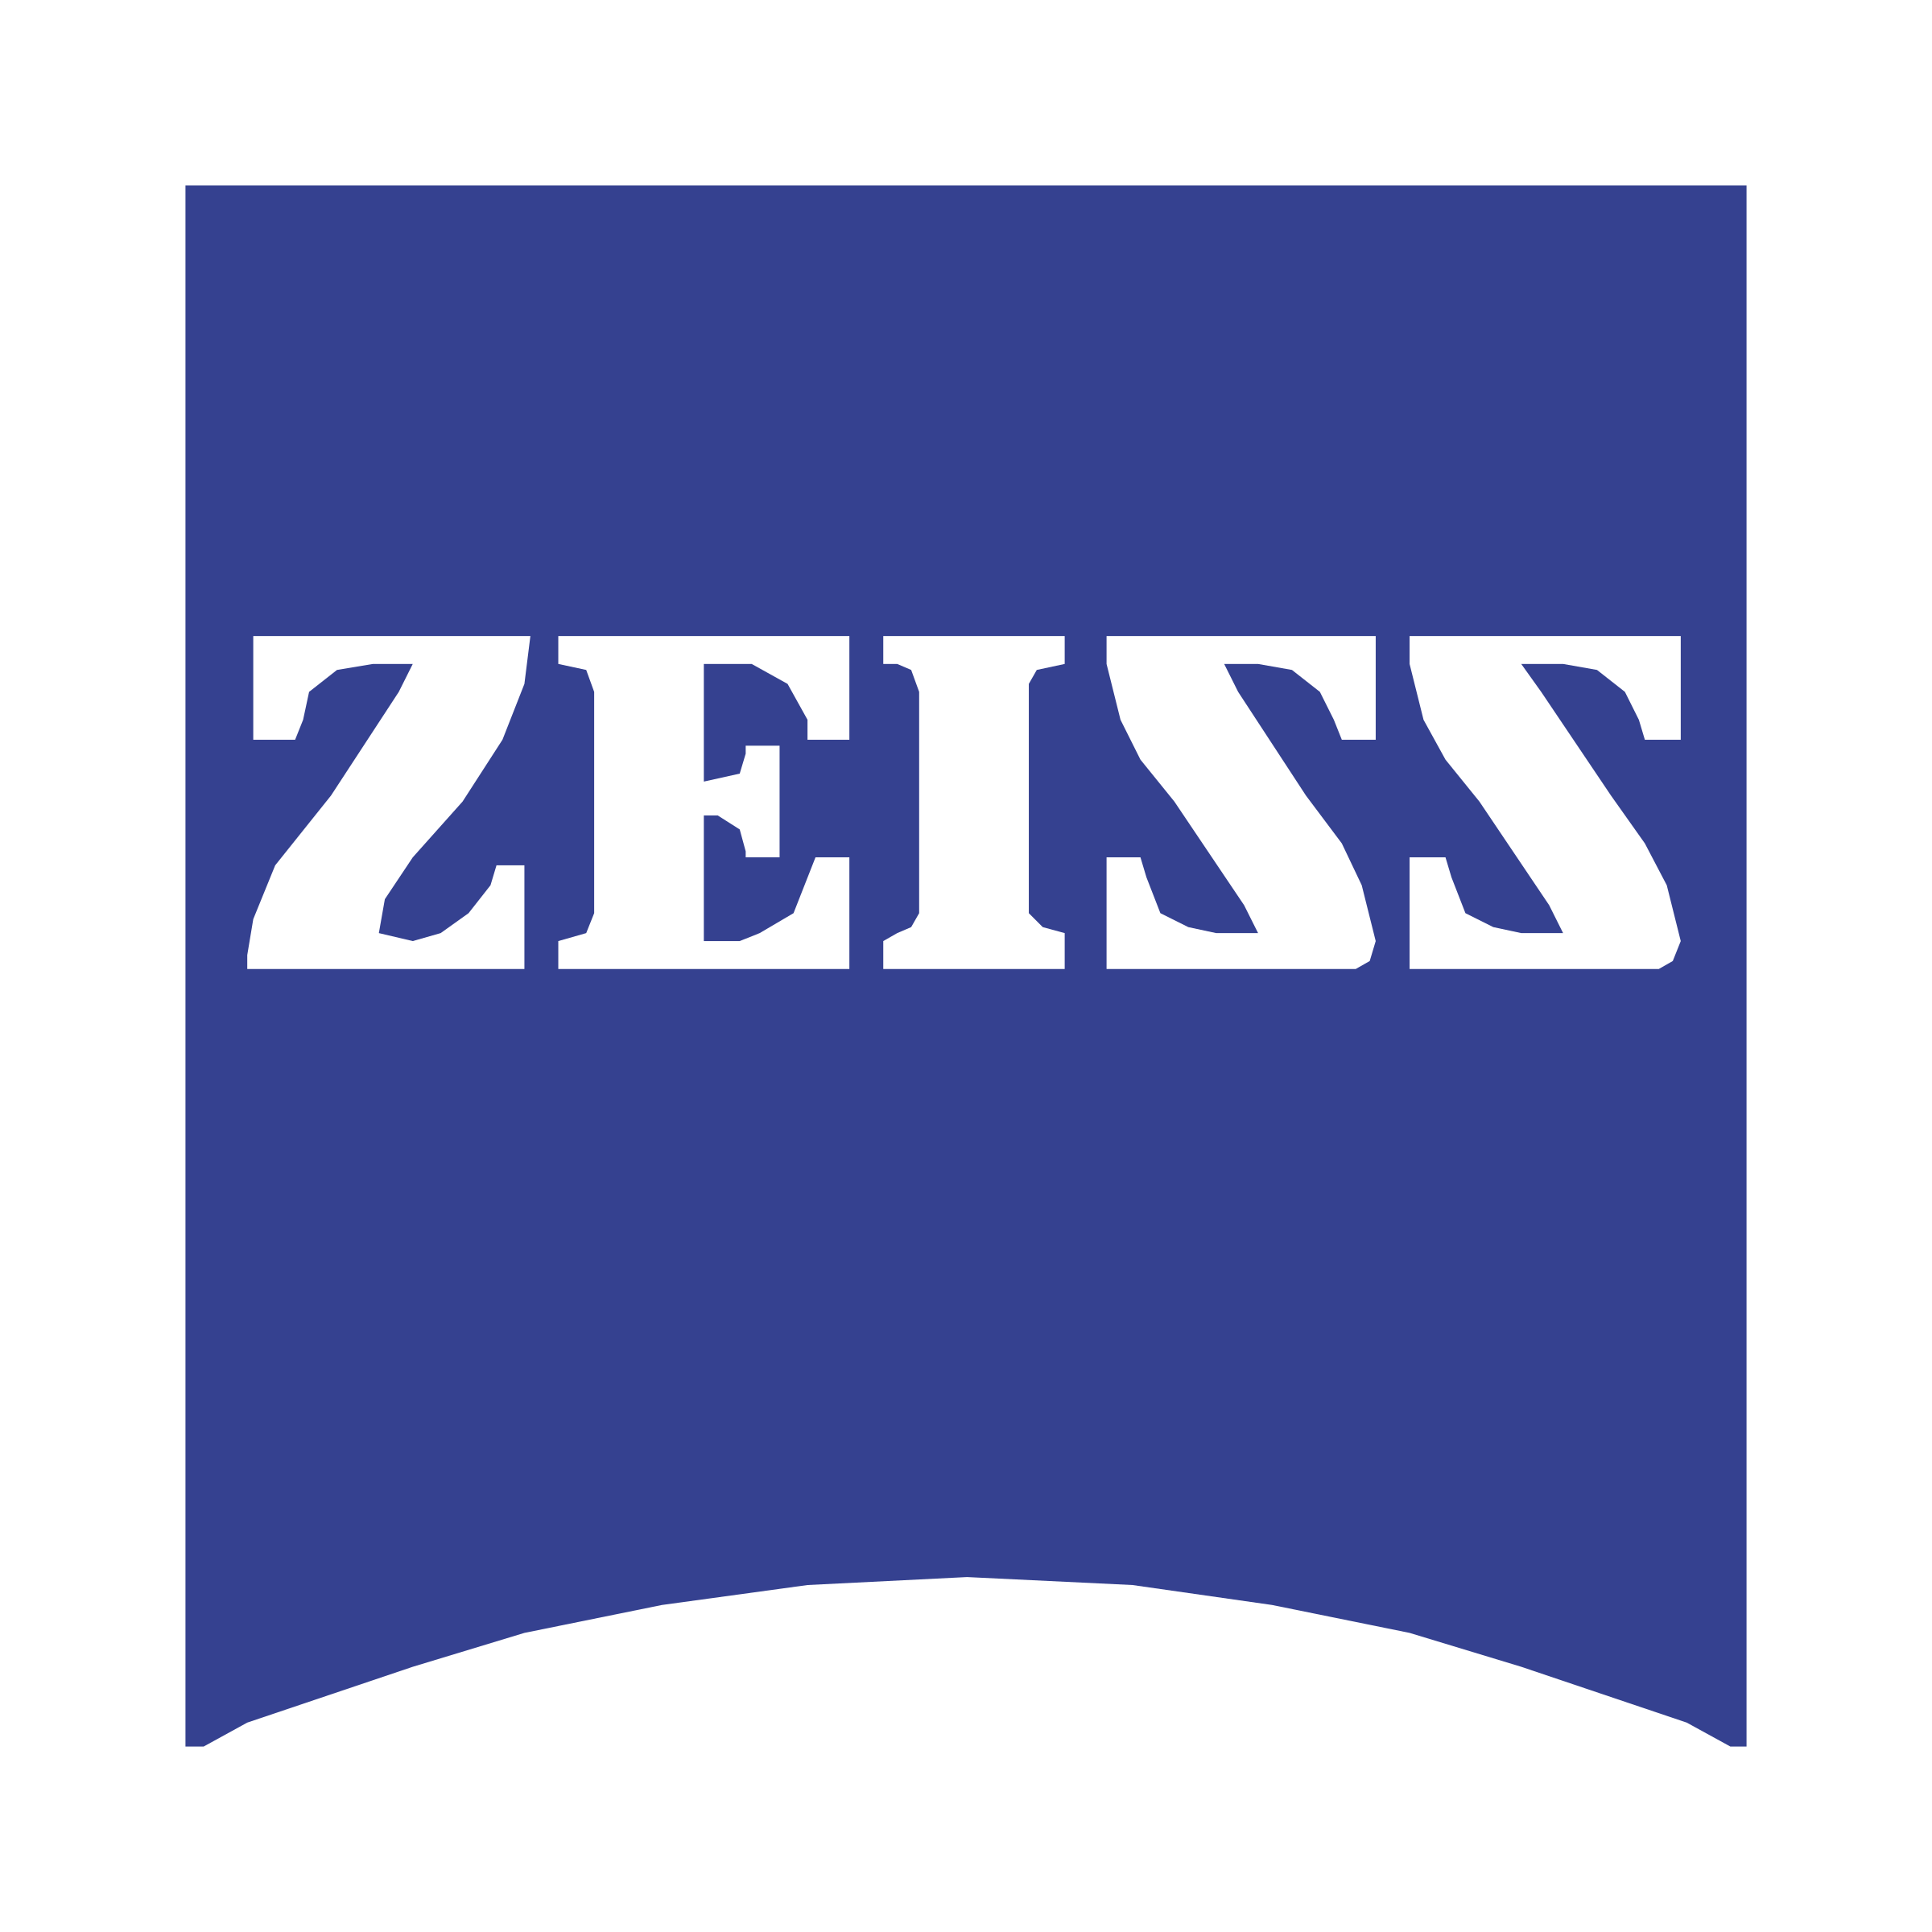 Zeiss download free clipart with a transparent background.